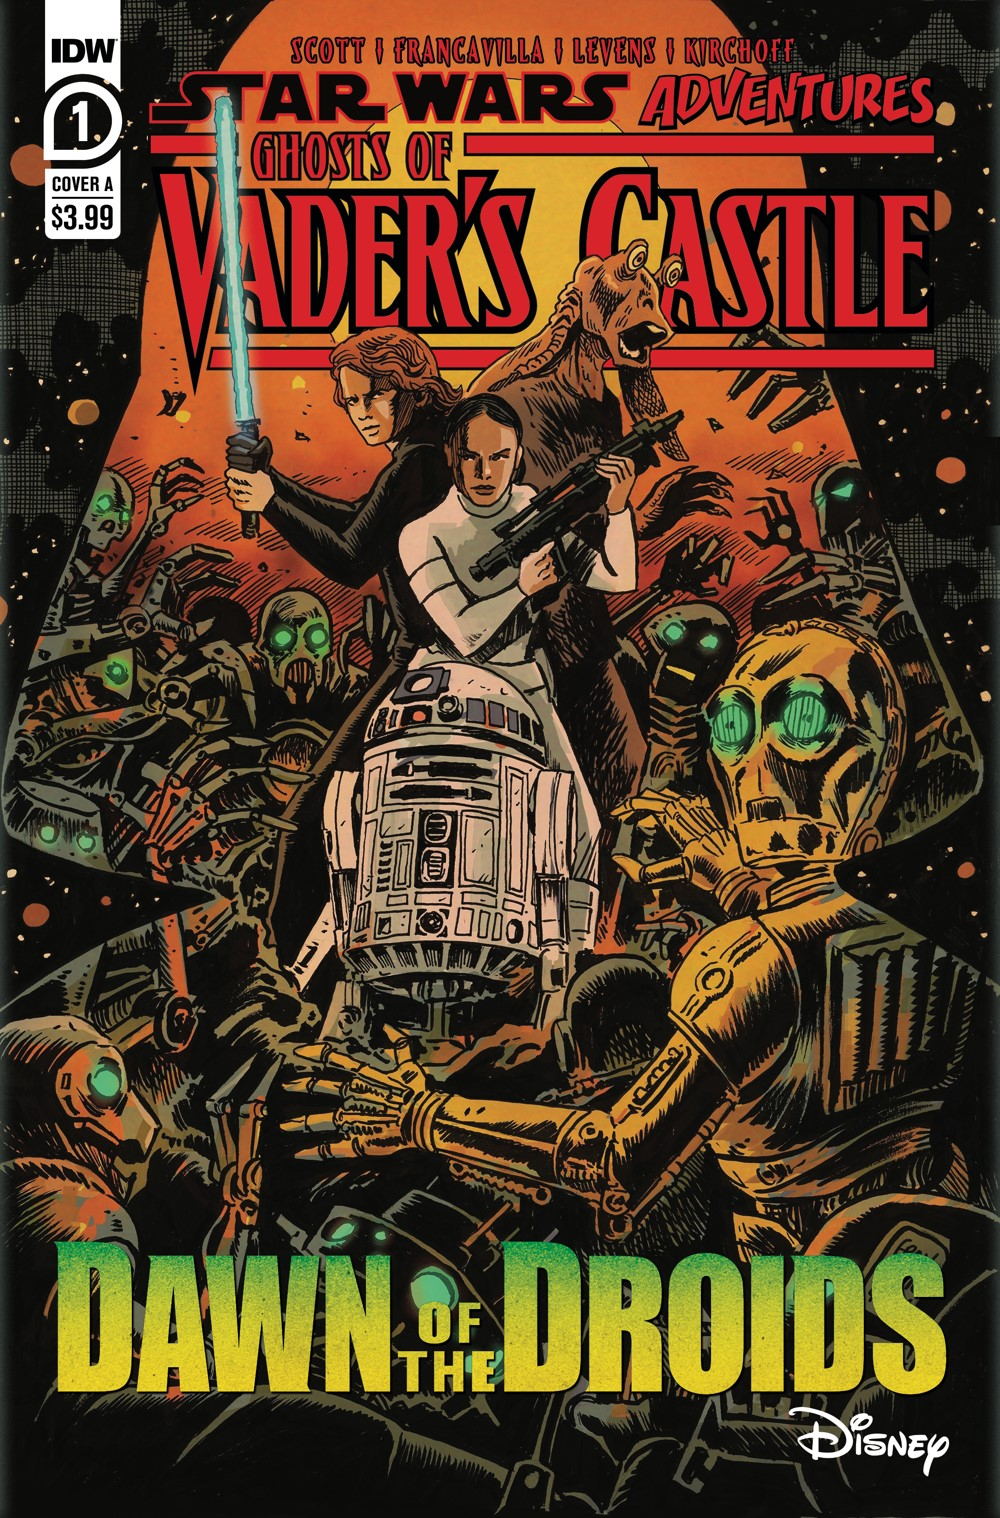 SW_GoVC01-CvrA ComicList Previews: STAR WARS ADVENTURES GHOST OF VADER'S CASTLE #1 (OF 5)